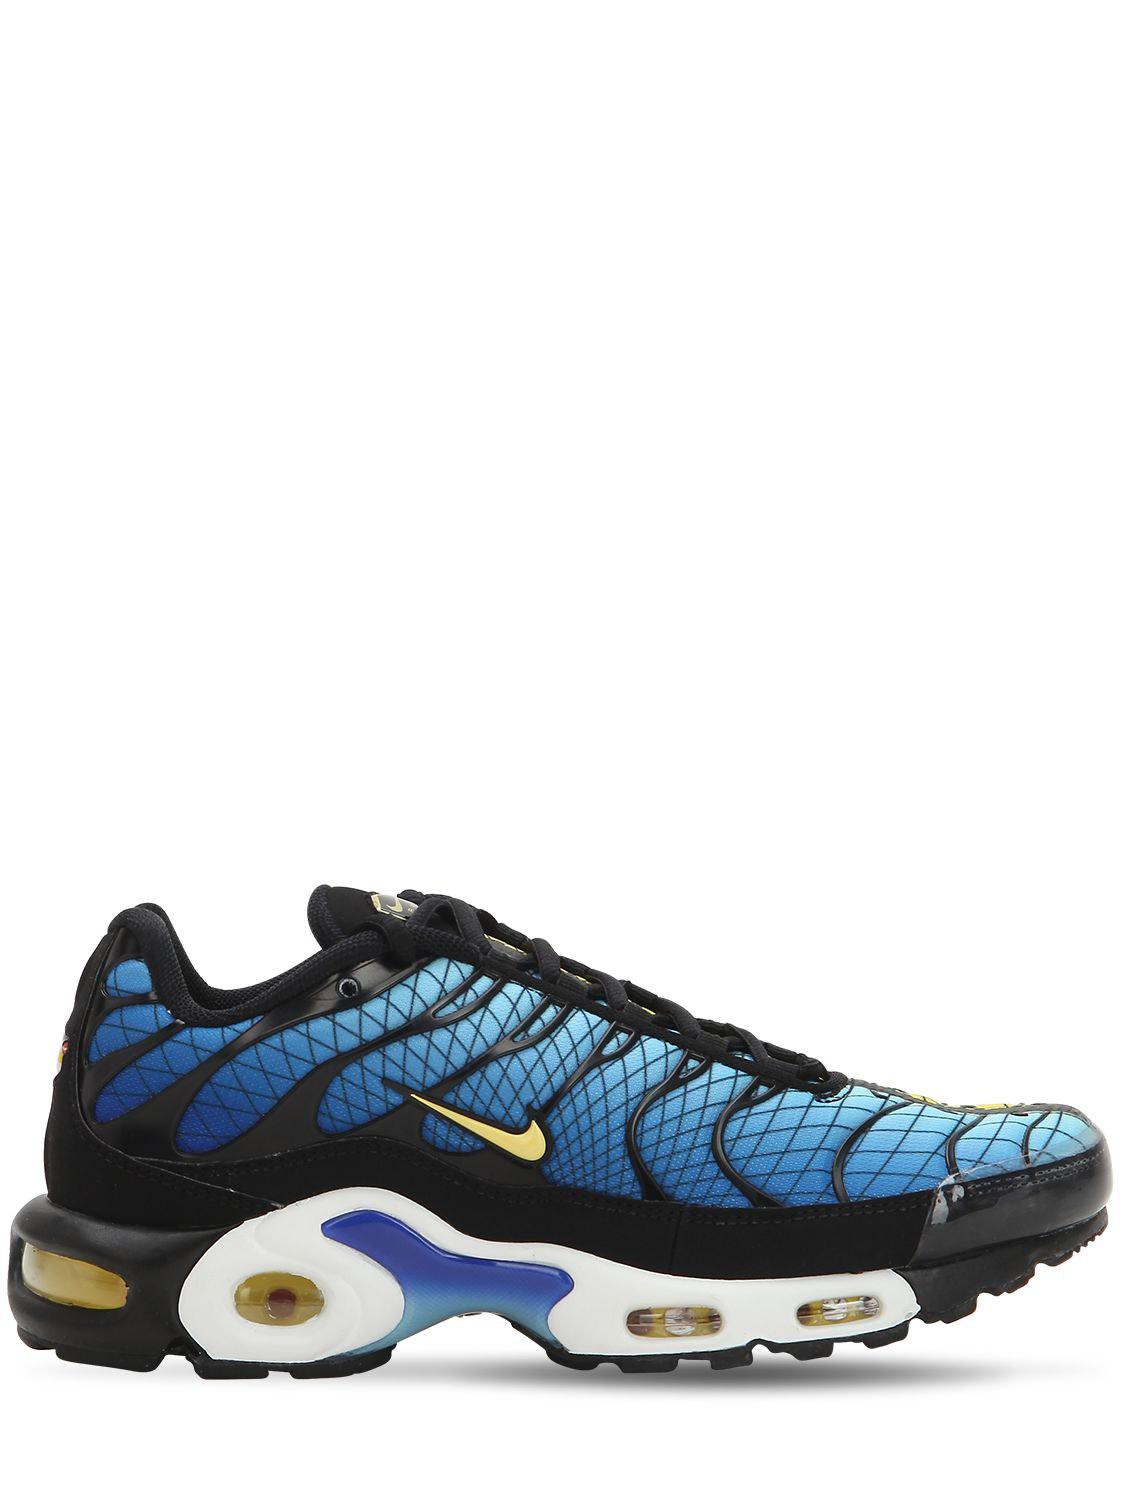 Nike Synthetic Air Max Plus Tn Se Sneakers in Black/Blue (Blue) for ...